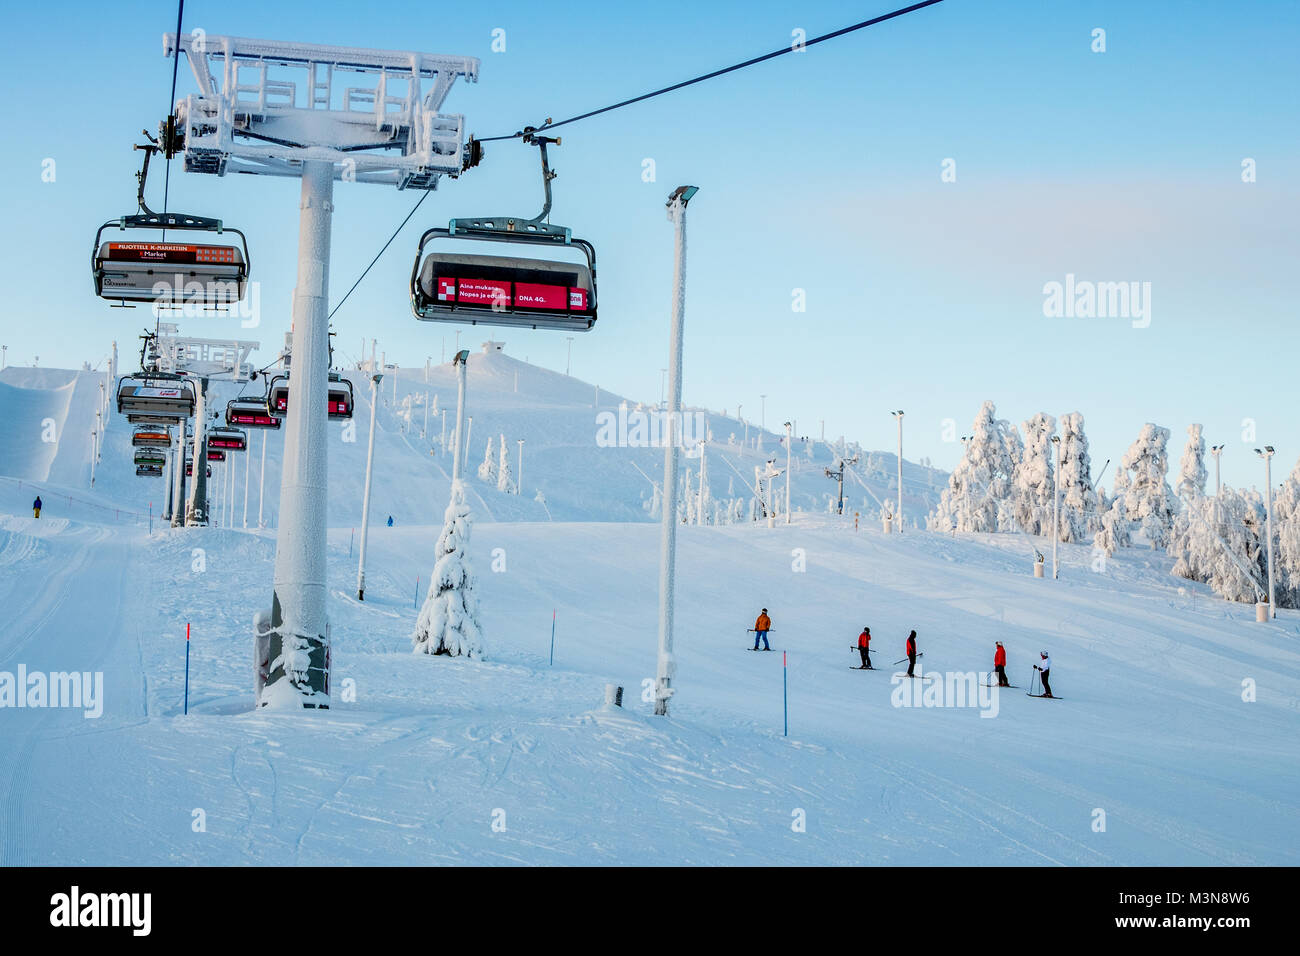 chairlifts at the ski resort of ruka in finland stock photo